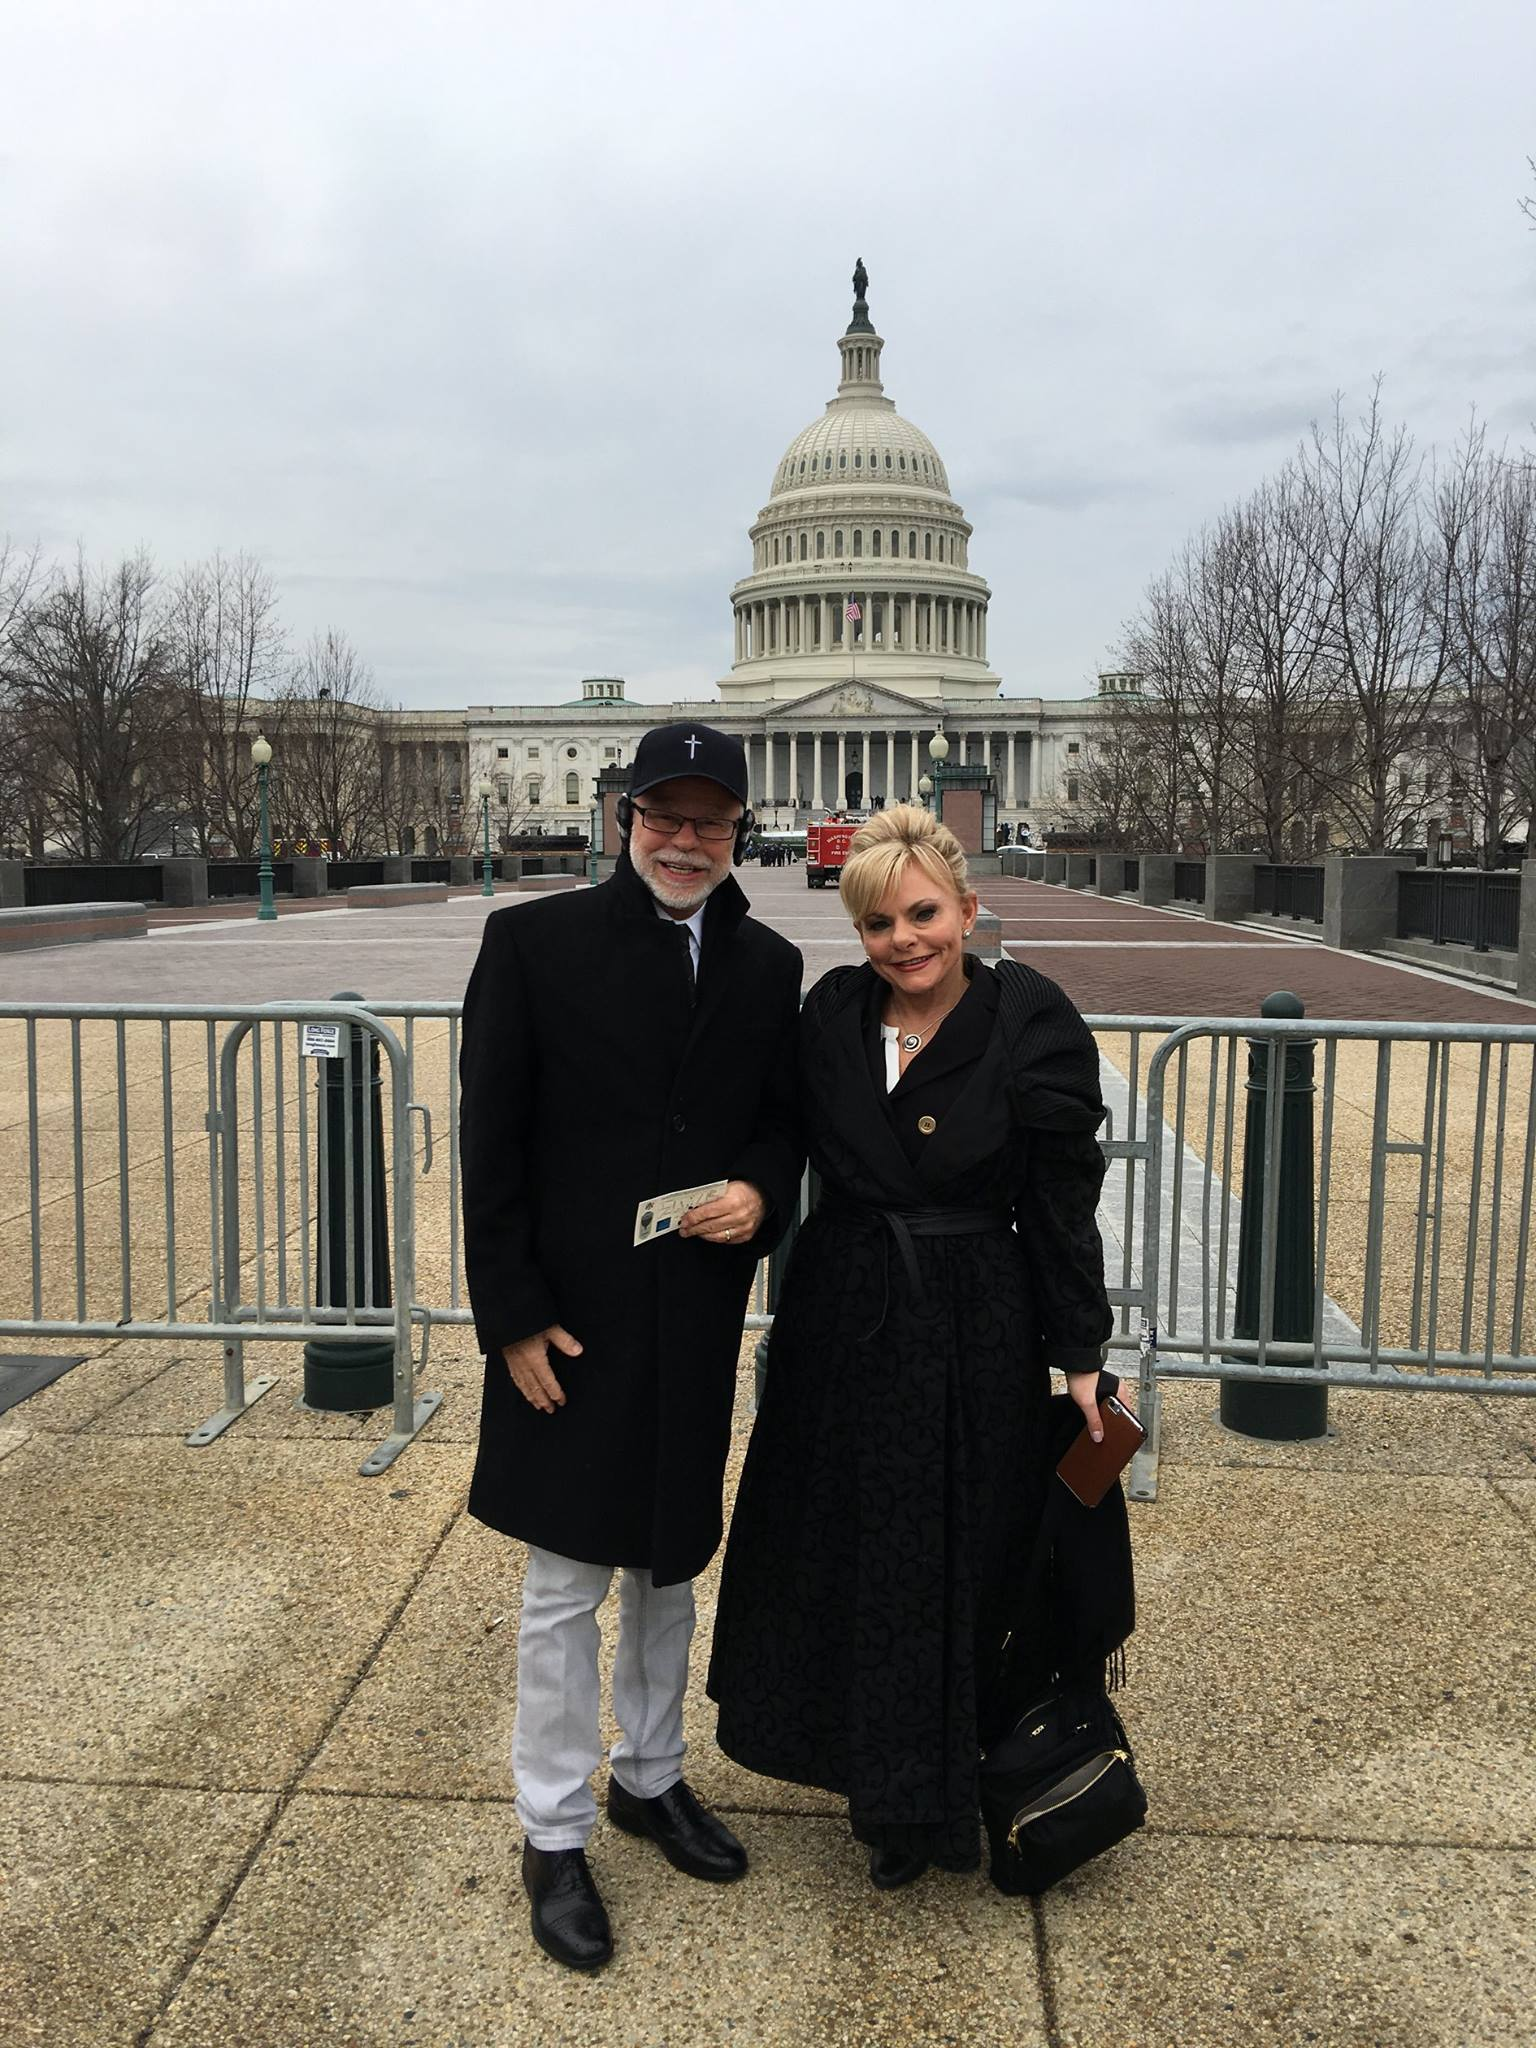 Jim And Lori Bakker at the Capitol Building in Washington D.C.